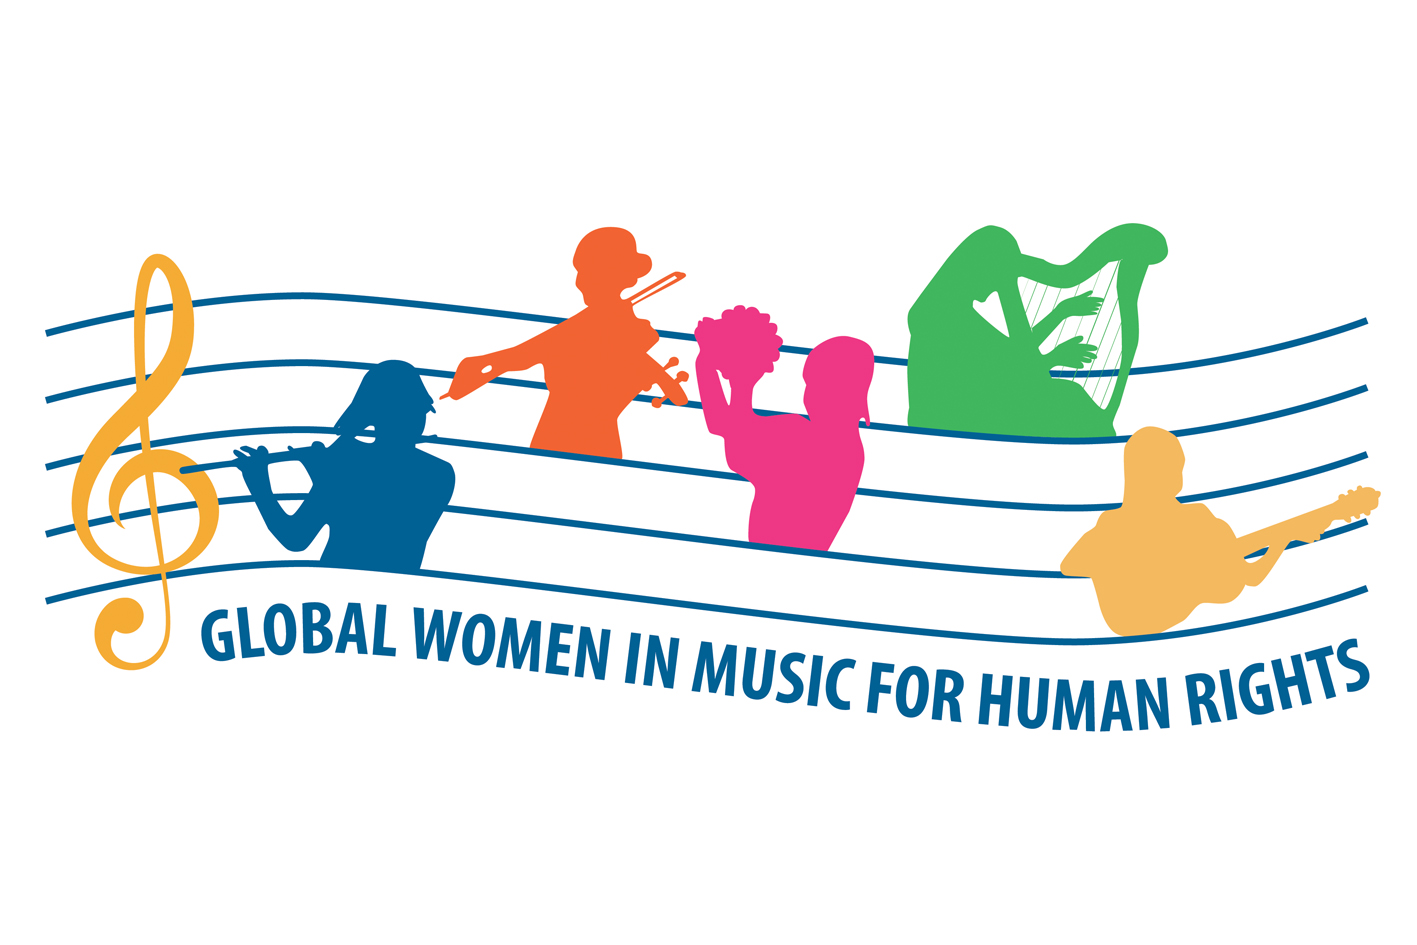 Global Women in Music for Human Rights | Stand up for human